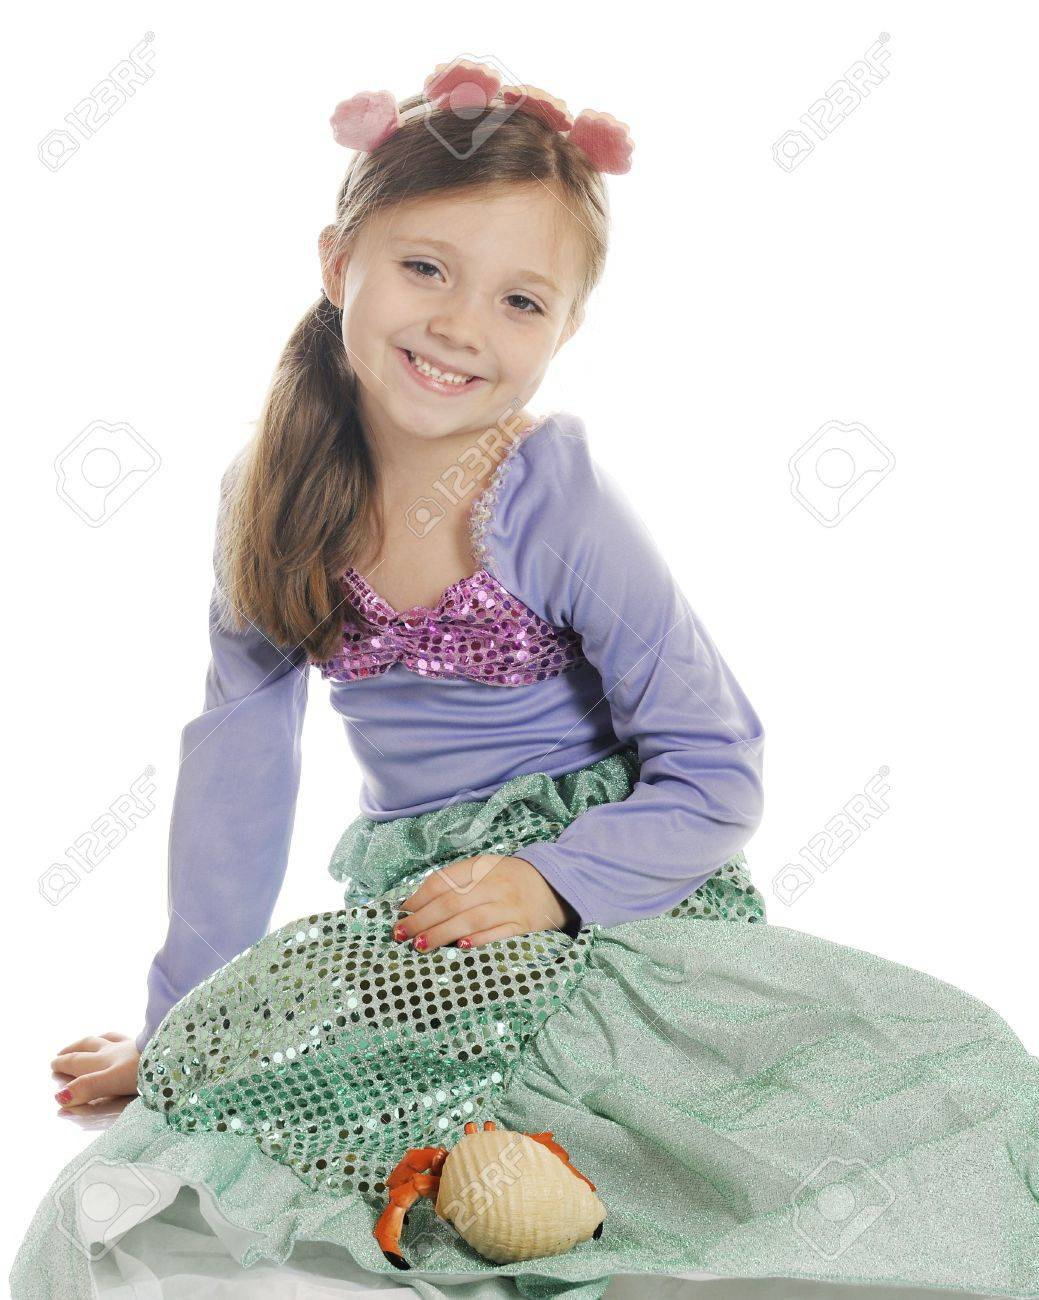 A beautiful elementary girl happily sitting with her pet hermit crab.  On a white background. Stock Photo - 14636350